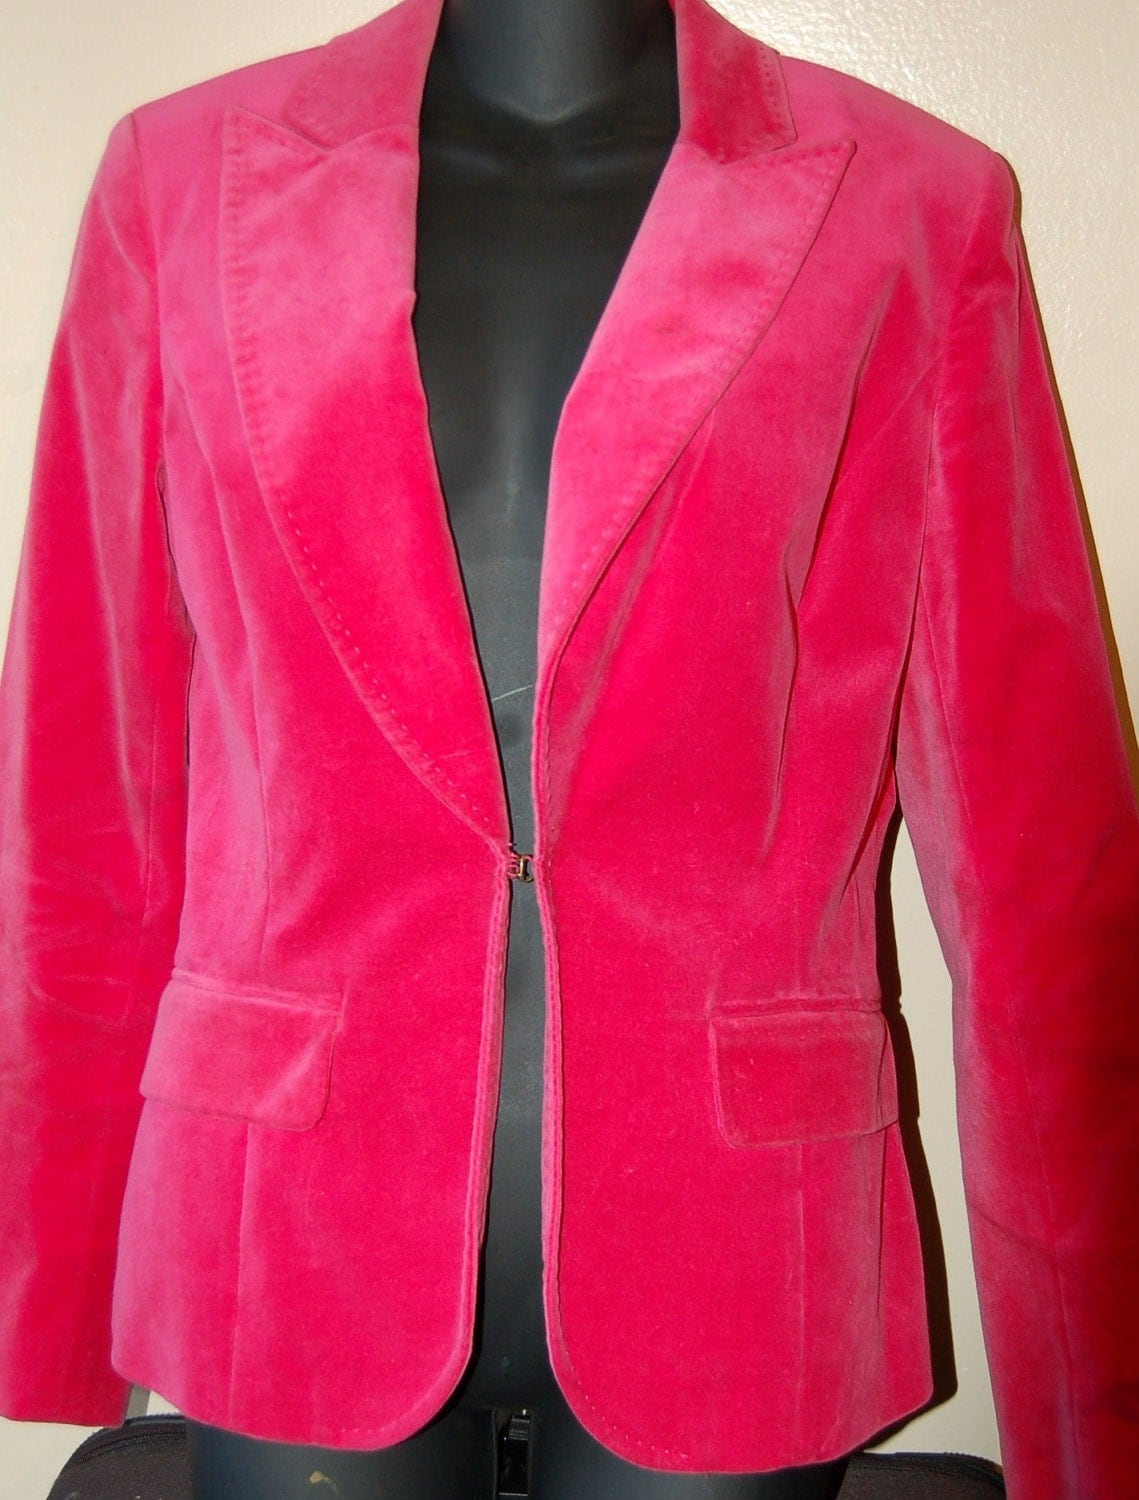 Kenneth Cole vintage hot pink velvet blazer by etseebetsee on Etsy